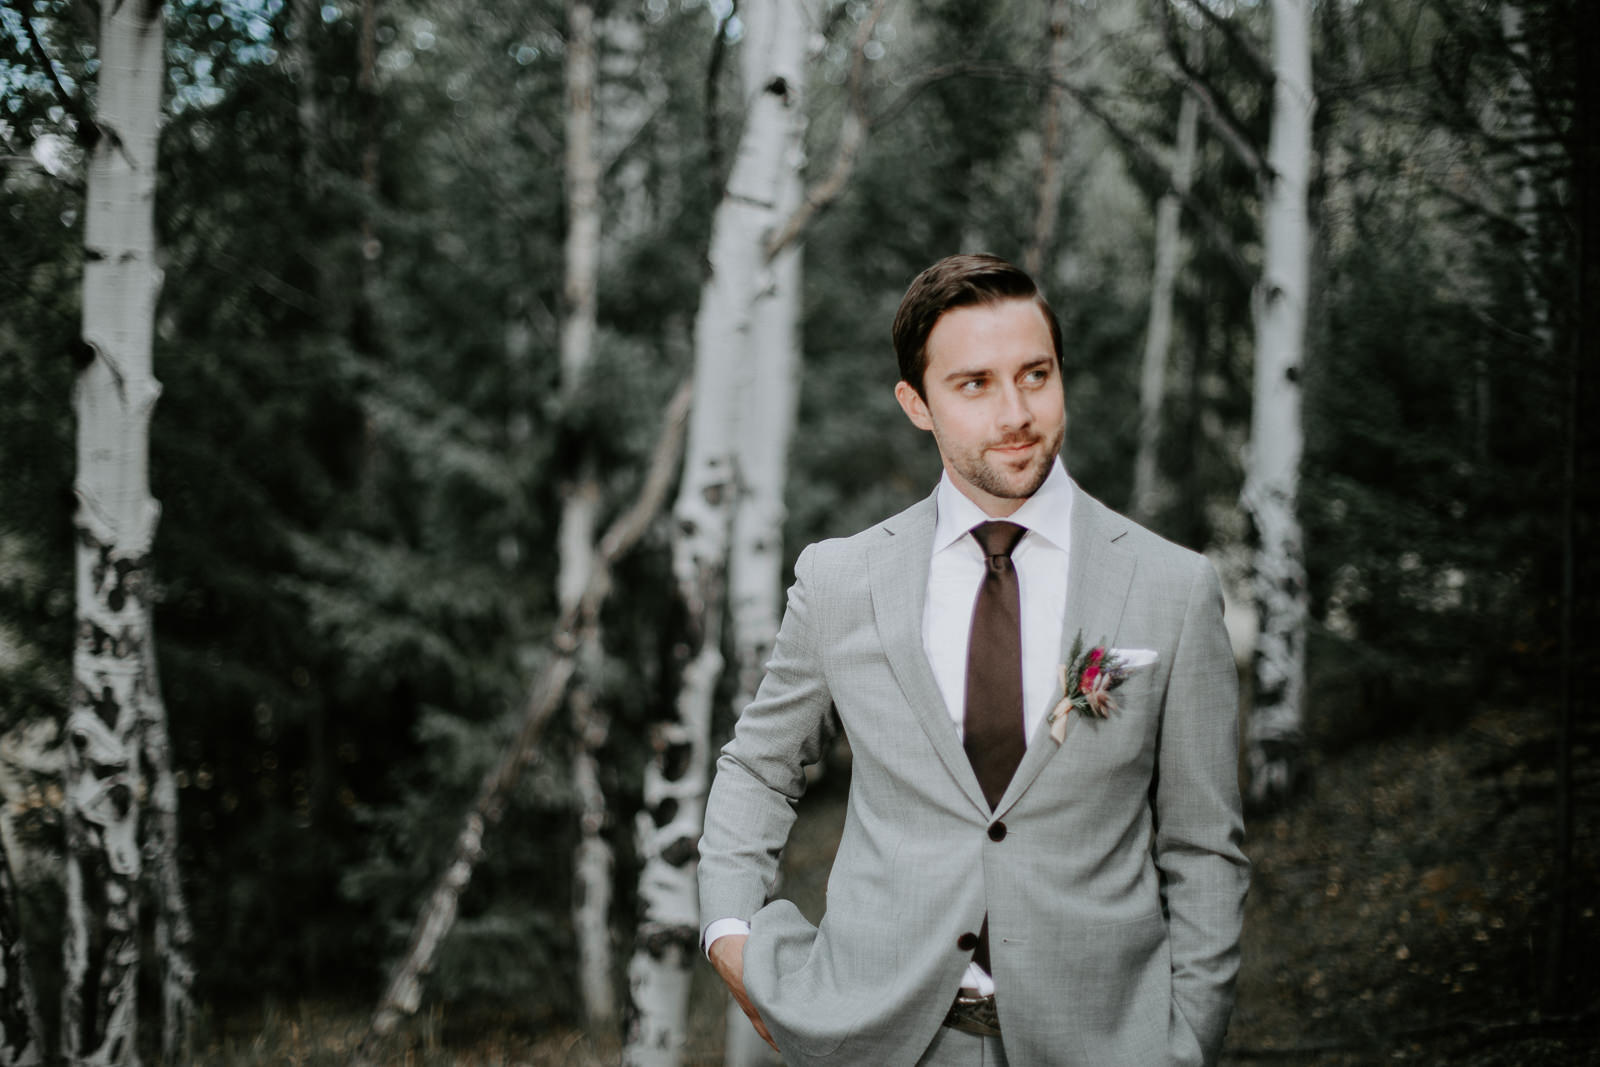 Smiling, anxious groom waiting for his bride during first look